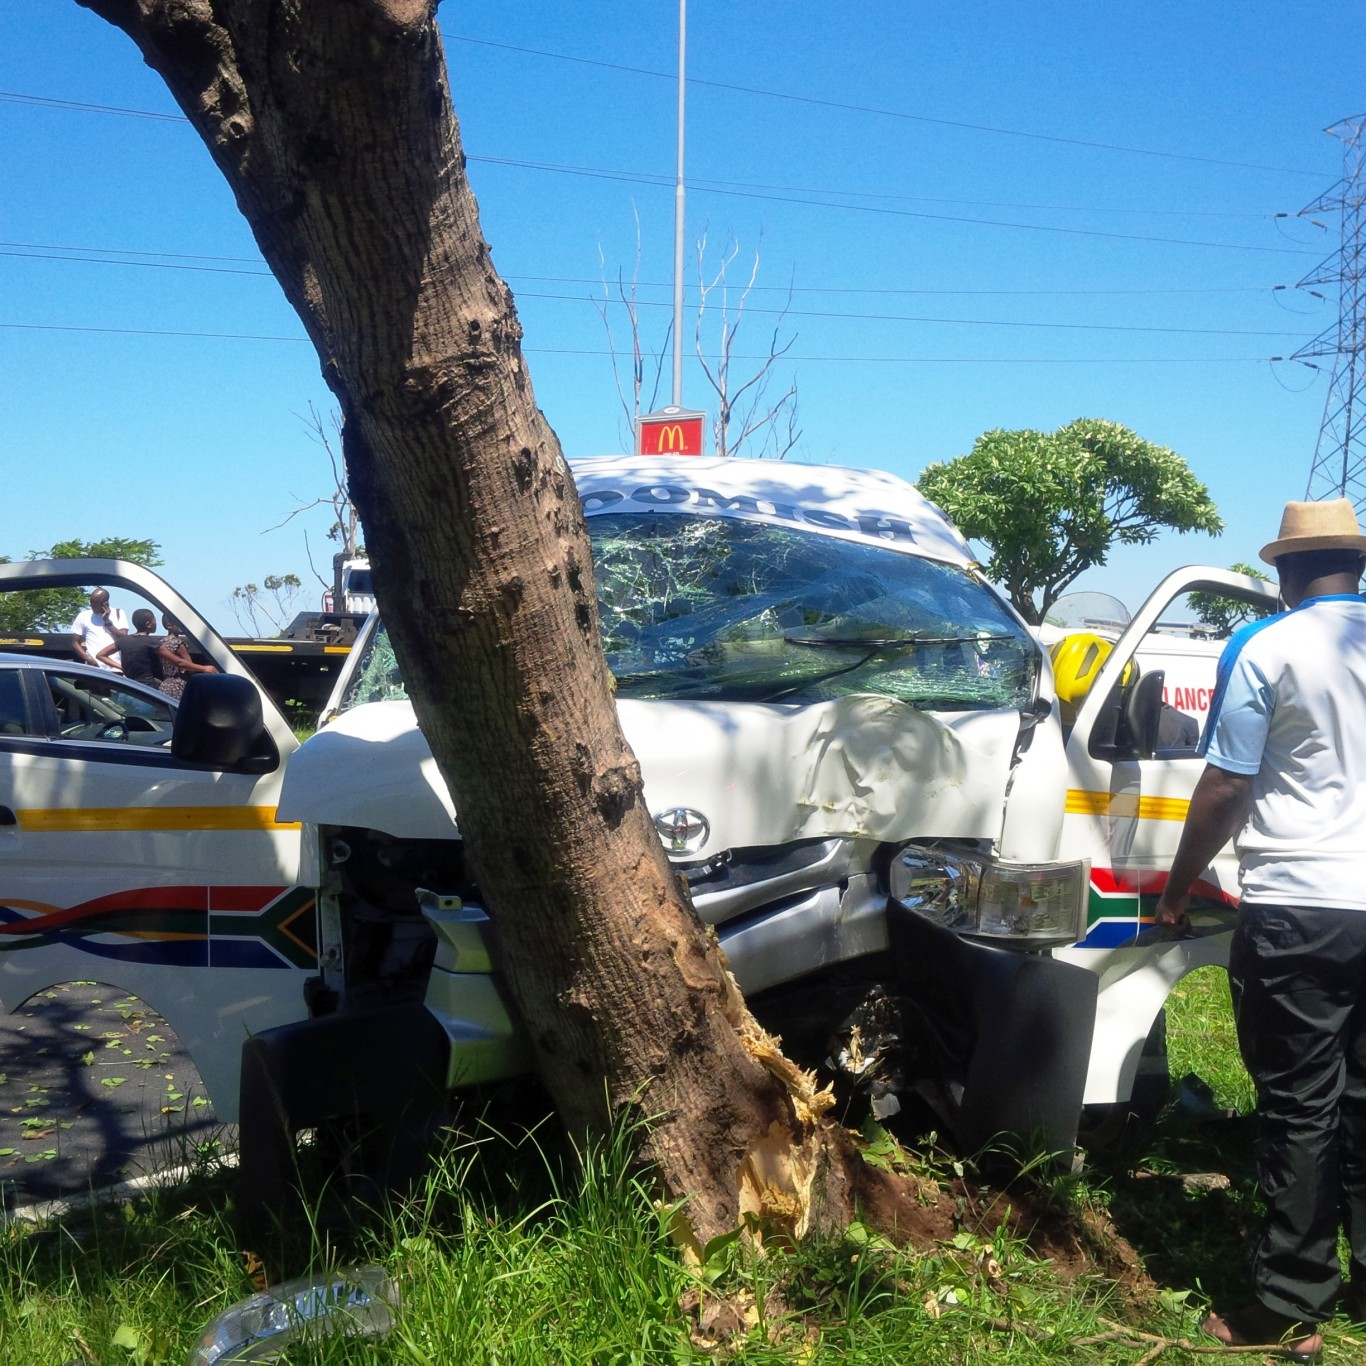 Taxi collides into tree leaving 15 injured